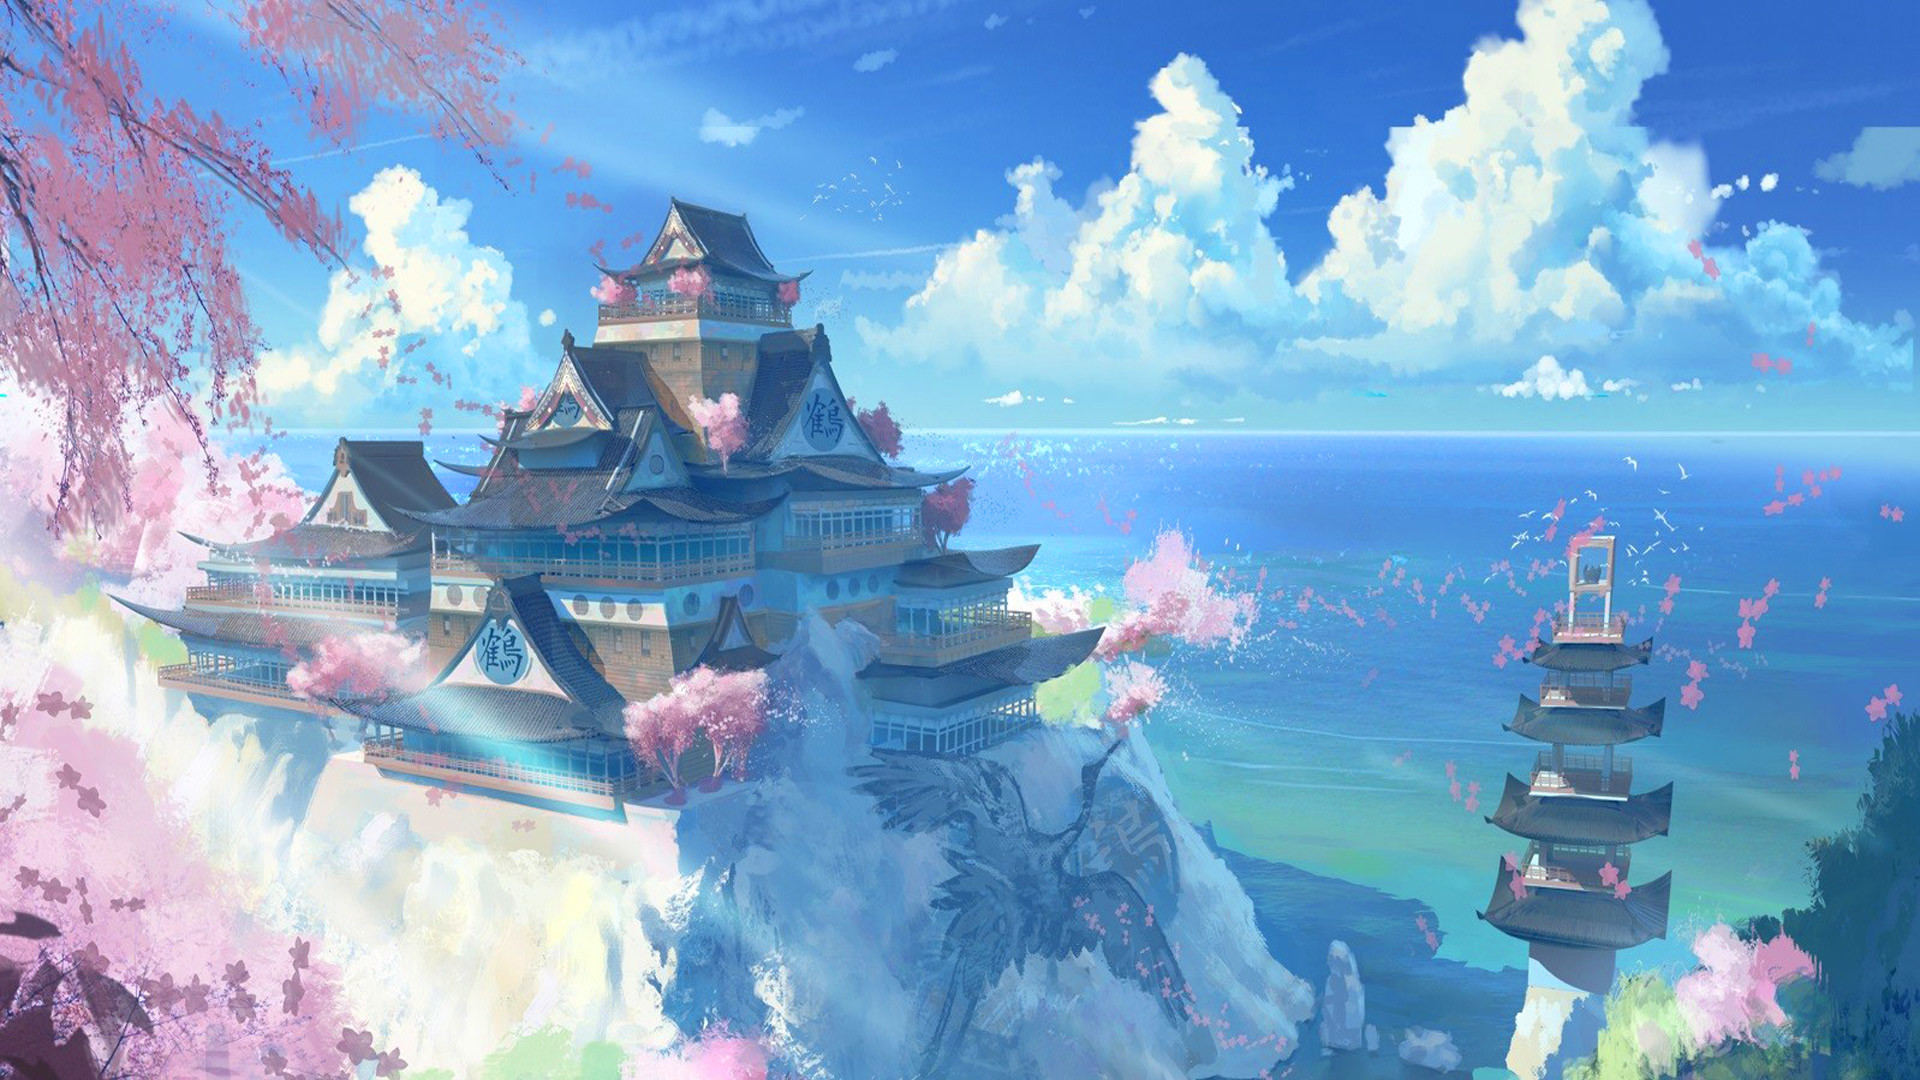 Anime Inspired Hd Fantasy Wallpapers For Your Collection: Japan Scenery Wallpaper (45+ Images